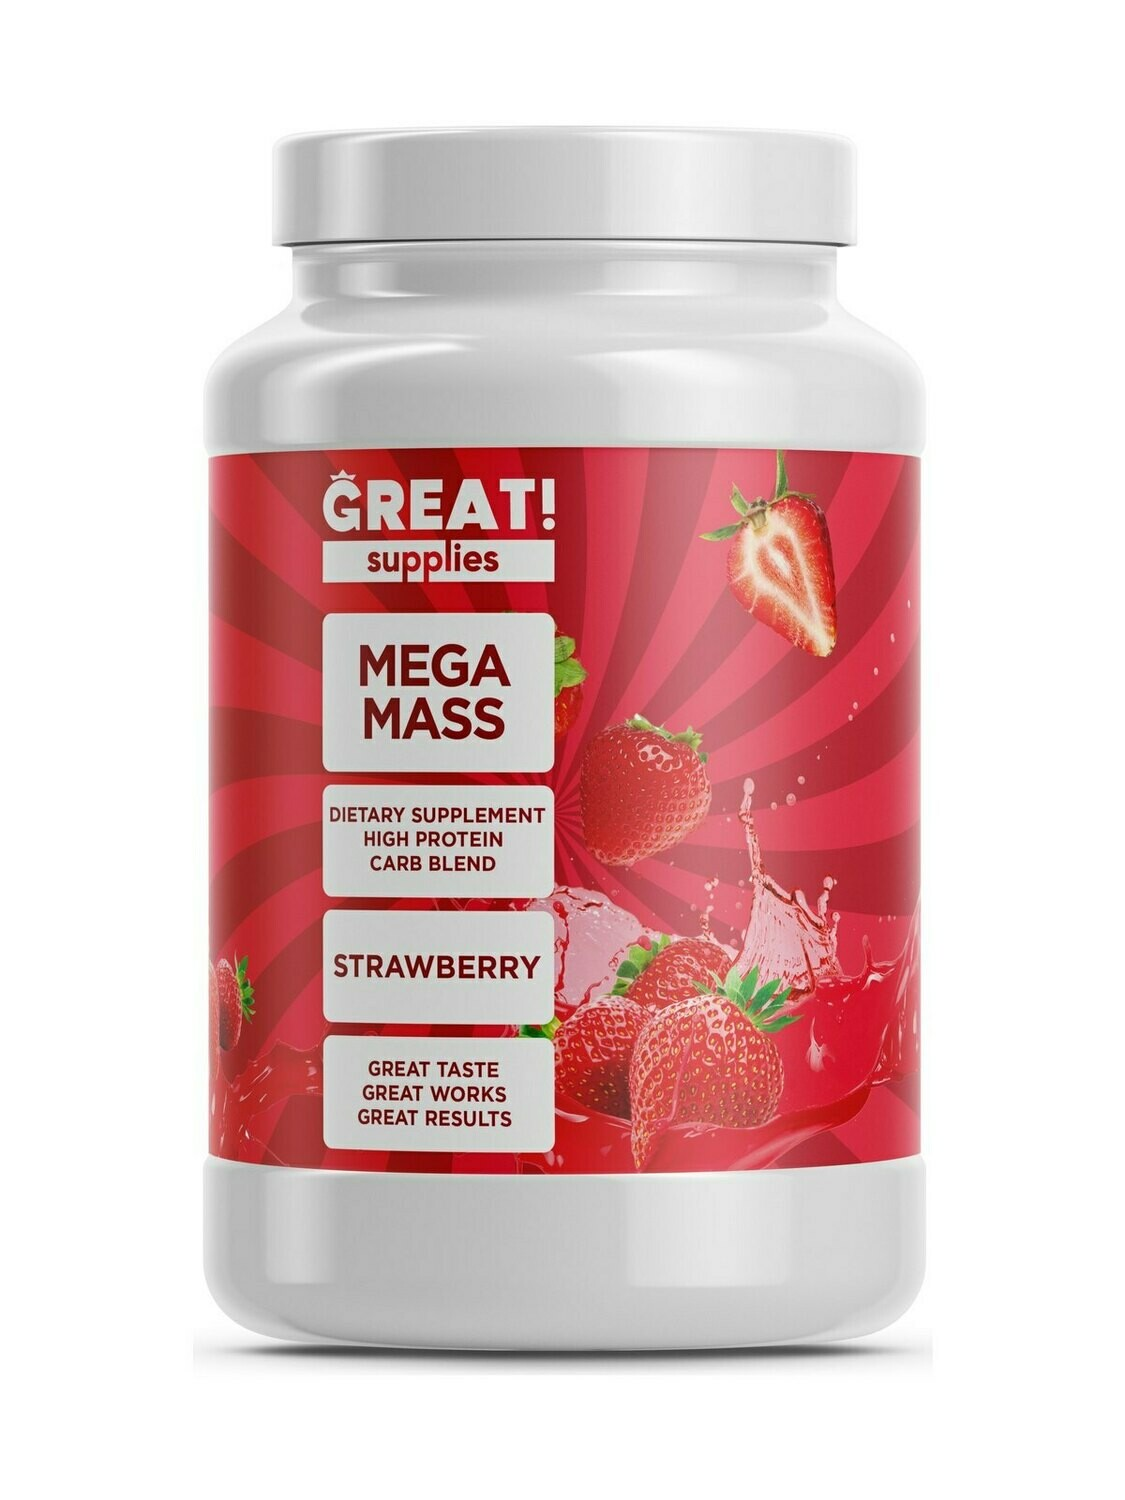 Гейнер Mega Mass вкус Клубника от Great Supplies 2000гр, 20 порций купить банку